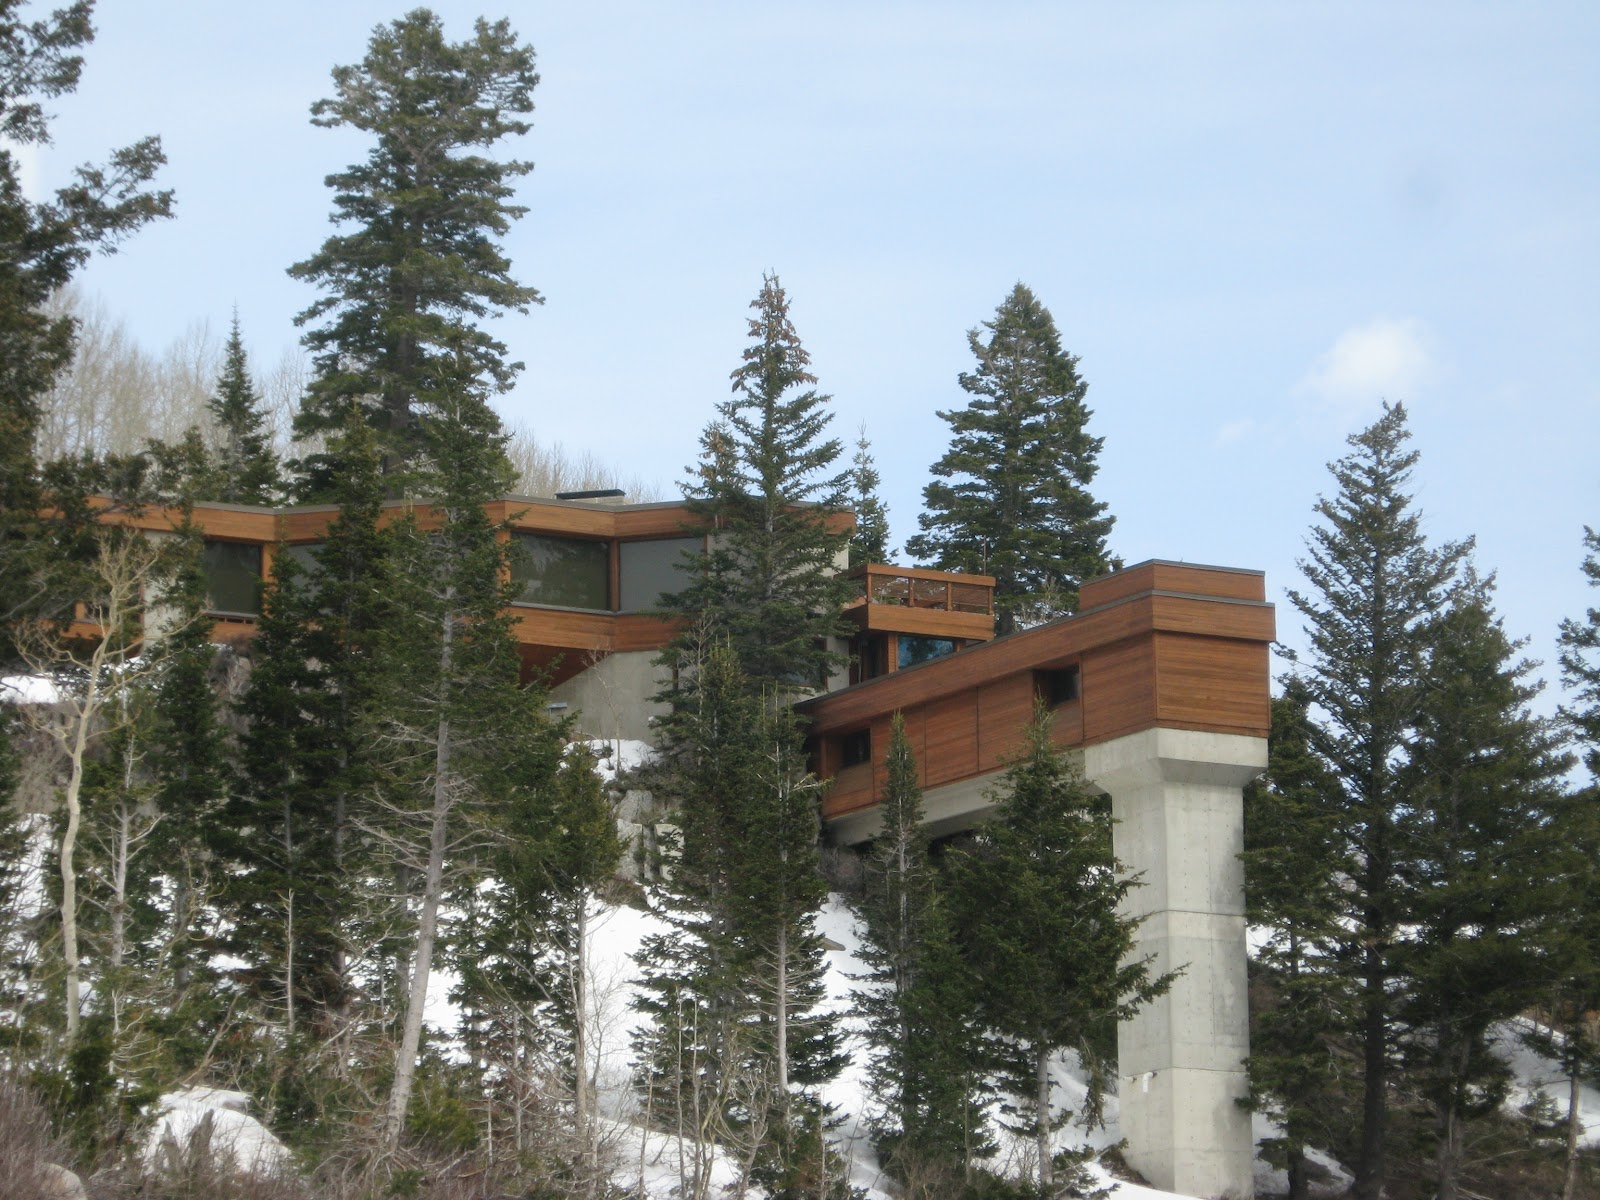 Ski House of the Day: Ski House on a Slippery Slope